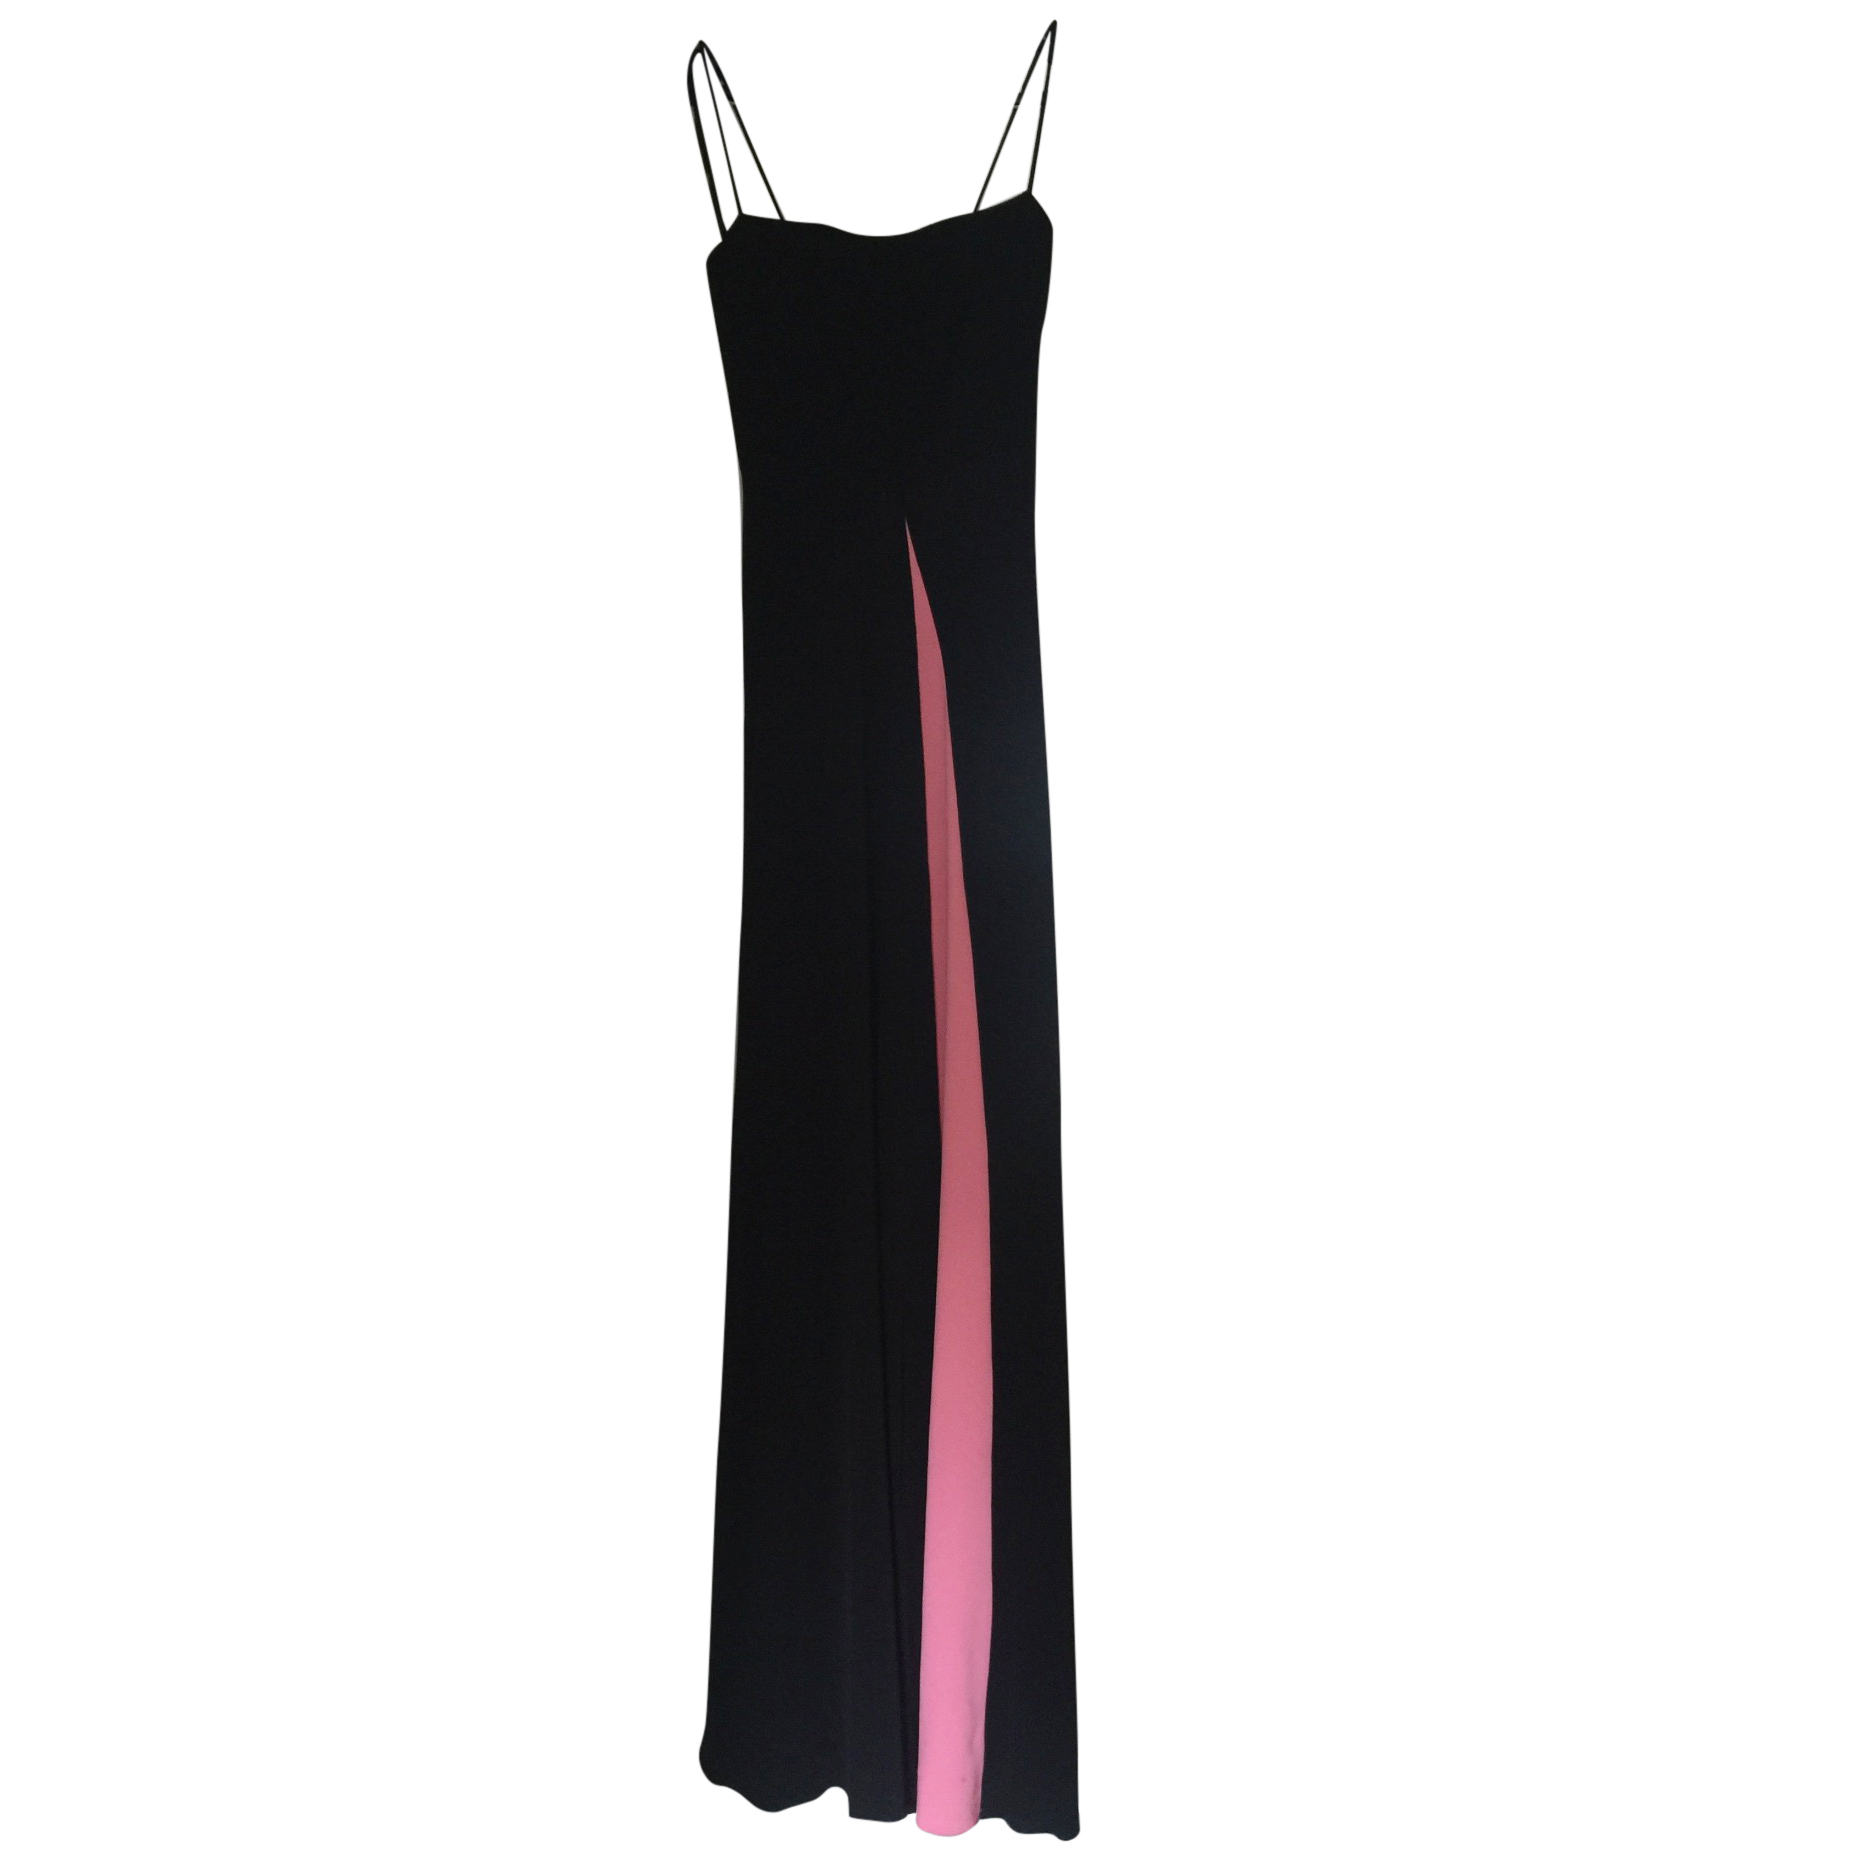 Alex Perry gown